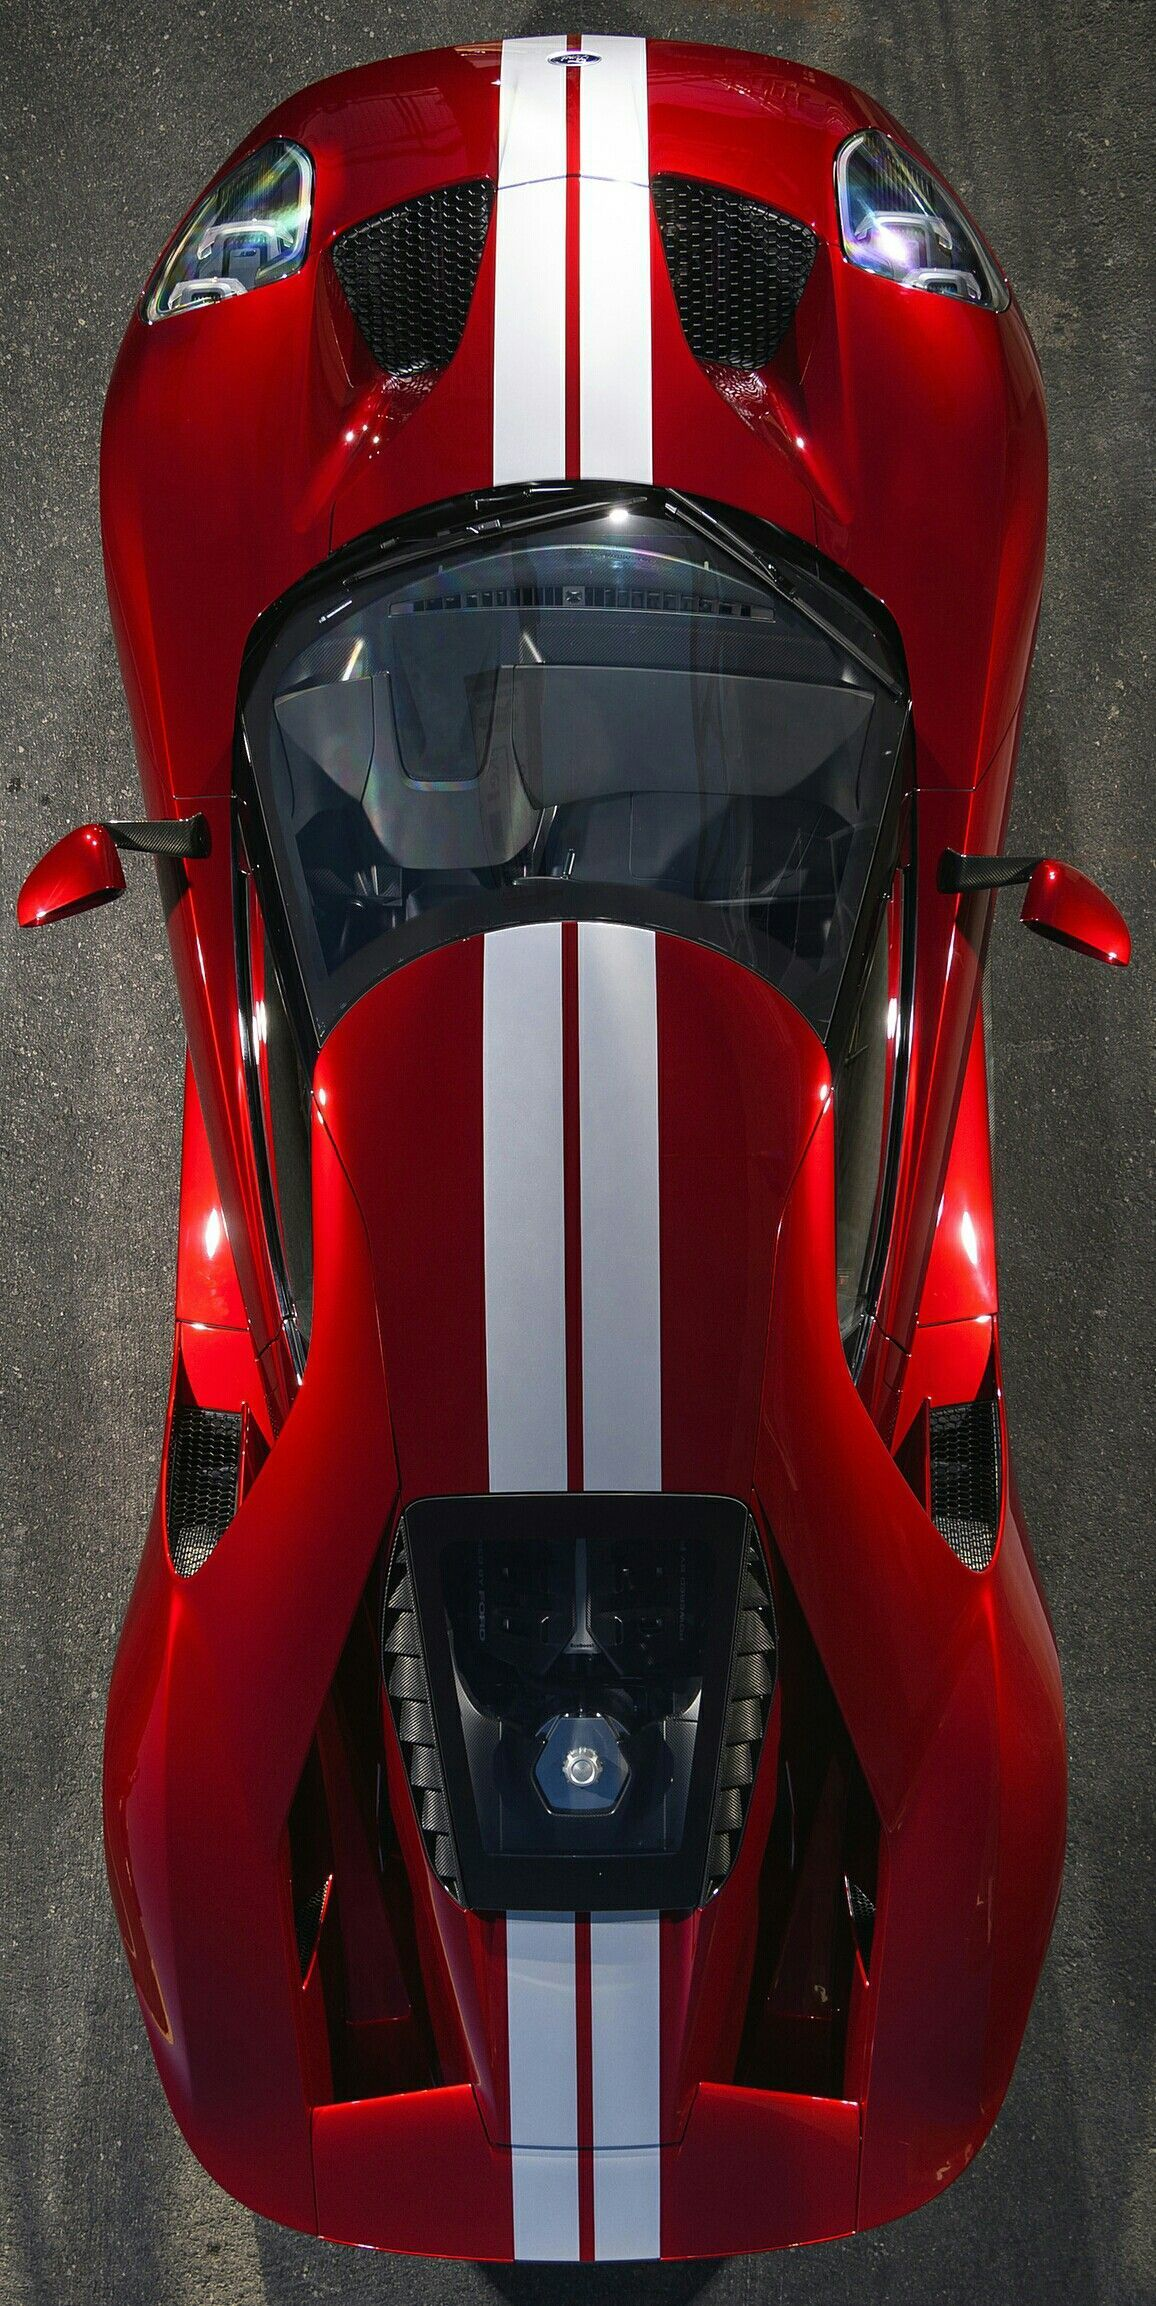 2017 Ford Gt By Levon Https Www Amazon Co Uk Baby Car Mirror Shatterproof Installation Dp B06xhg6ssy Ref Sr 1 2 Ie Utf8 Q Ford Gt Cool Sports Cars Sport Cars